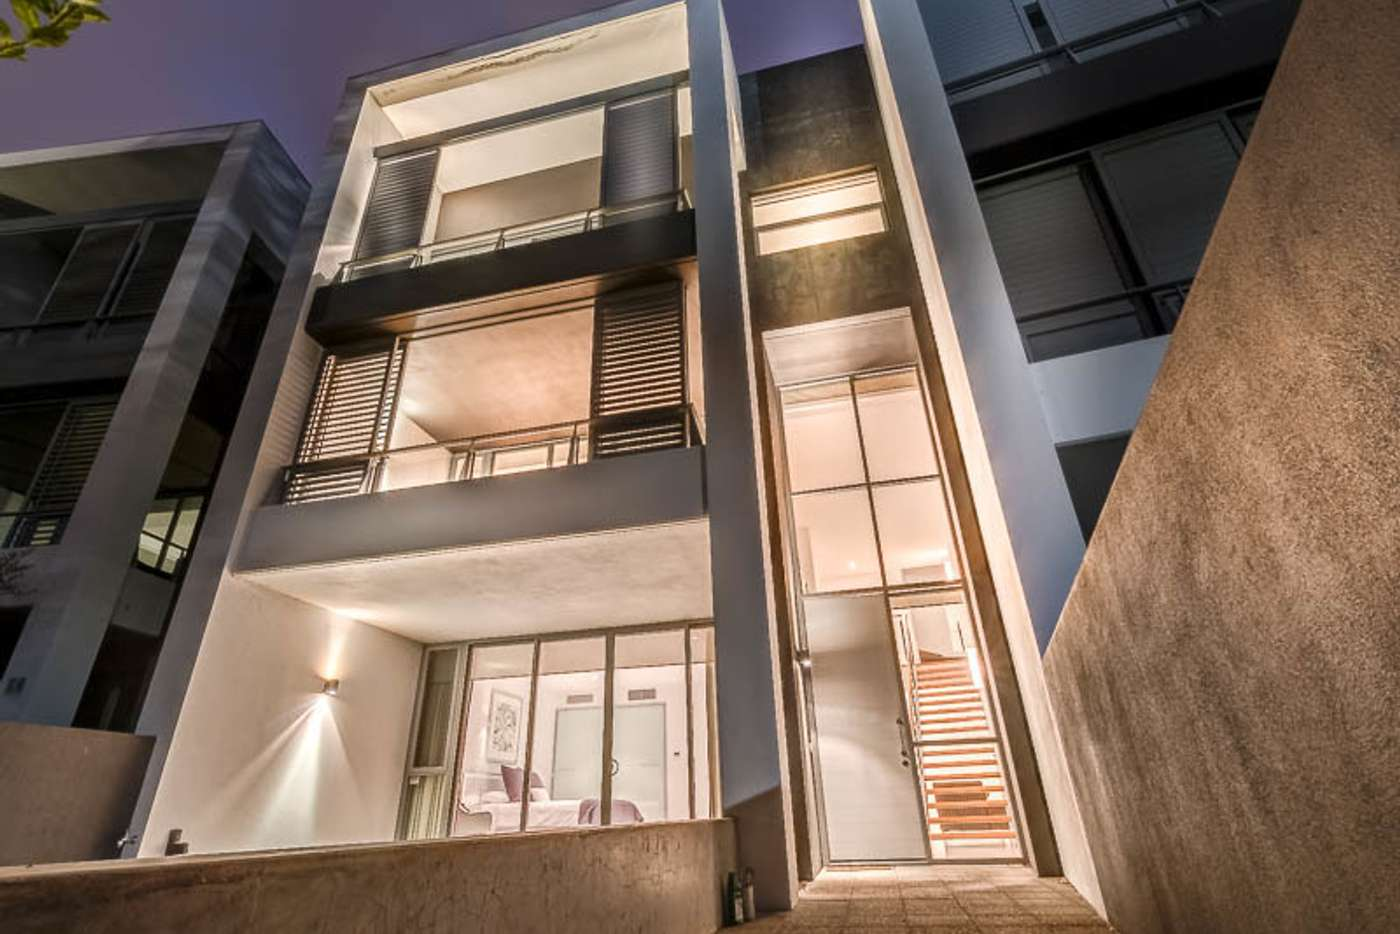 Main view of Homely house listing, 15 The Circus, Burswood WA 6100